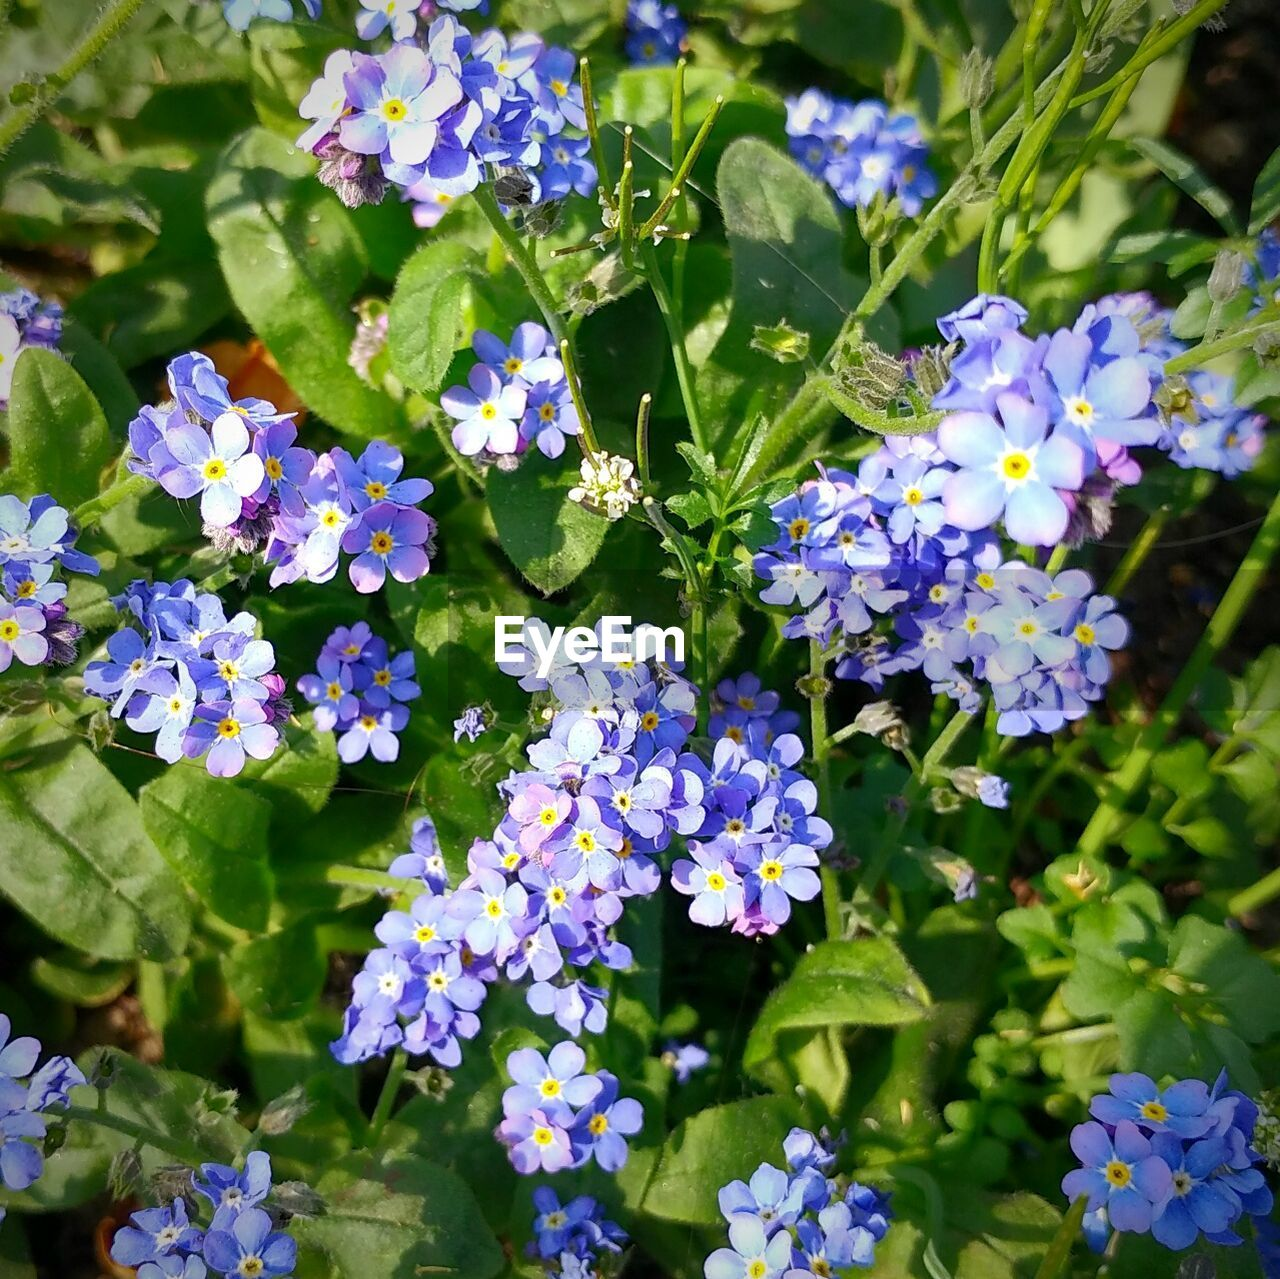 flower, beauty in nature, fragility, growth, purple, nature, plant, day, petal, green color, outdoors, flower head, freshness, no people, hydrangea, blooming, close-up